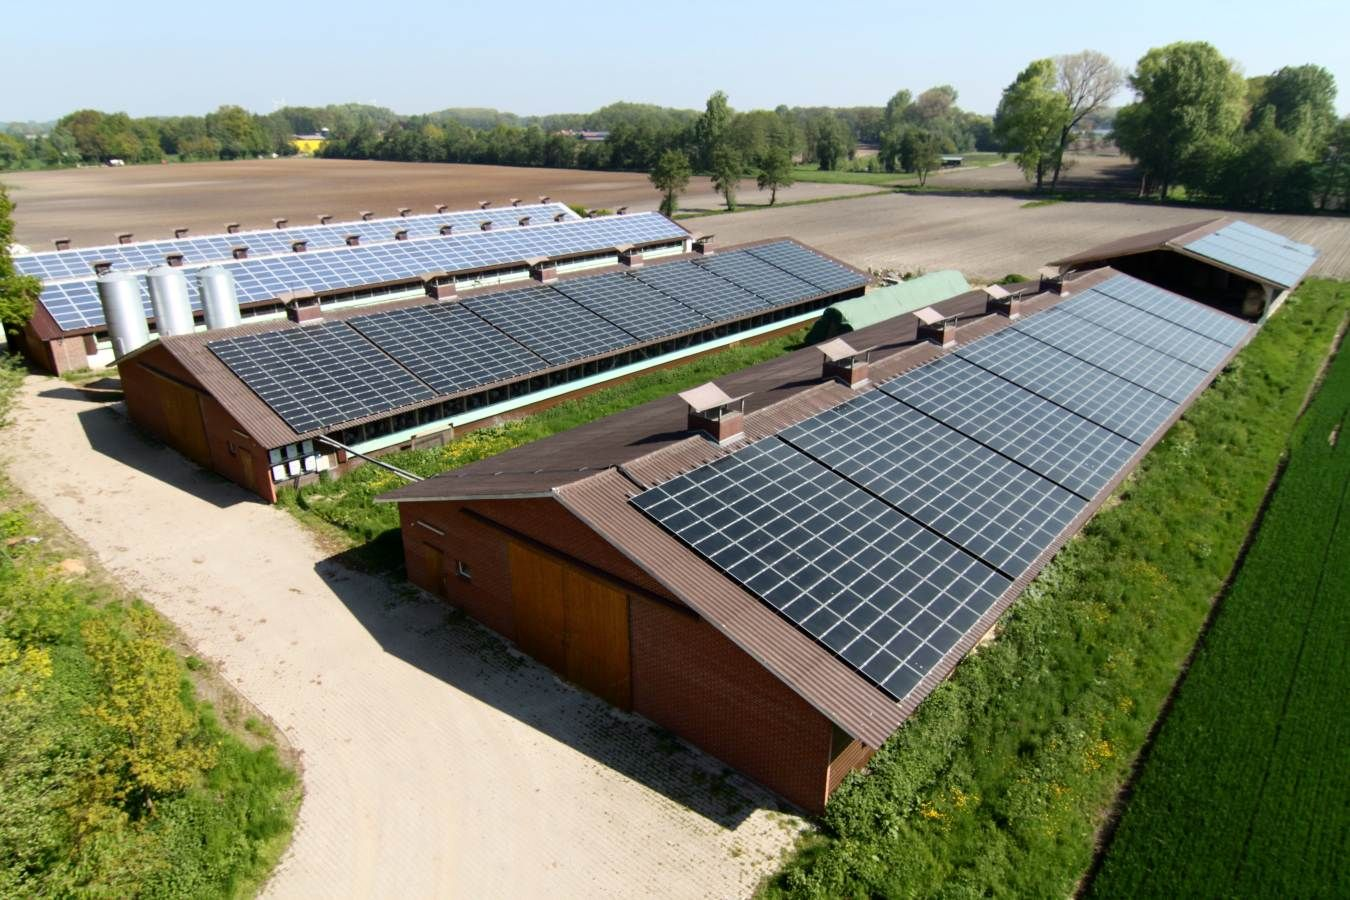 If You Like To Put Up Solar Panels In Your Home You Are Indeed Making A Great Choice Not Only For The Environment But For Your P Farm Design Solar Farm